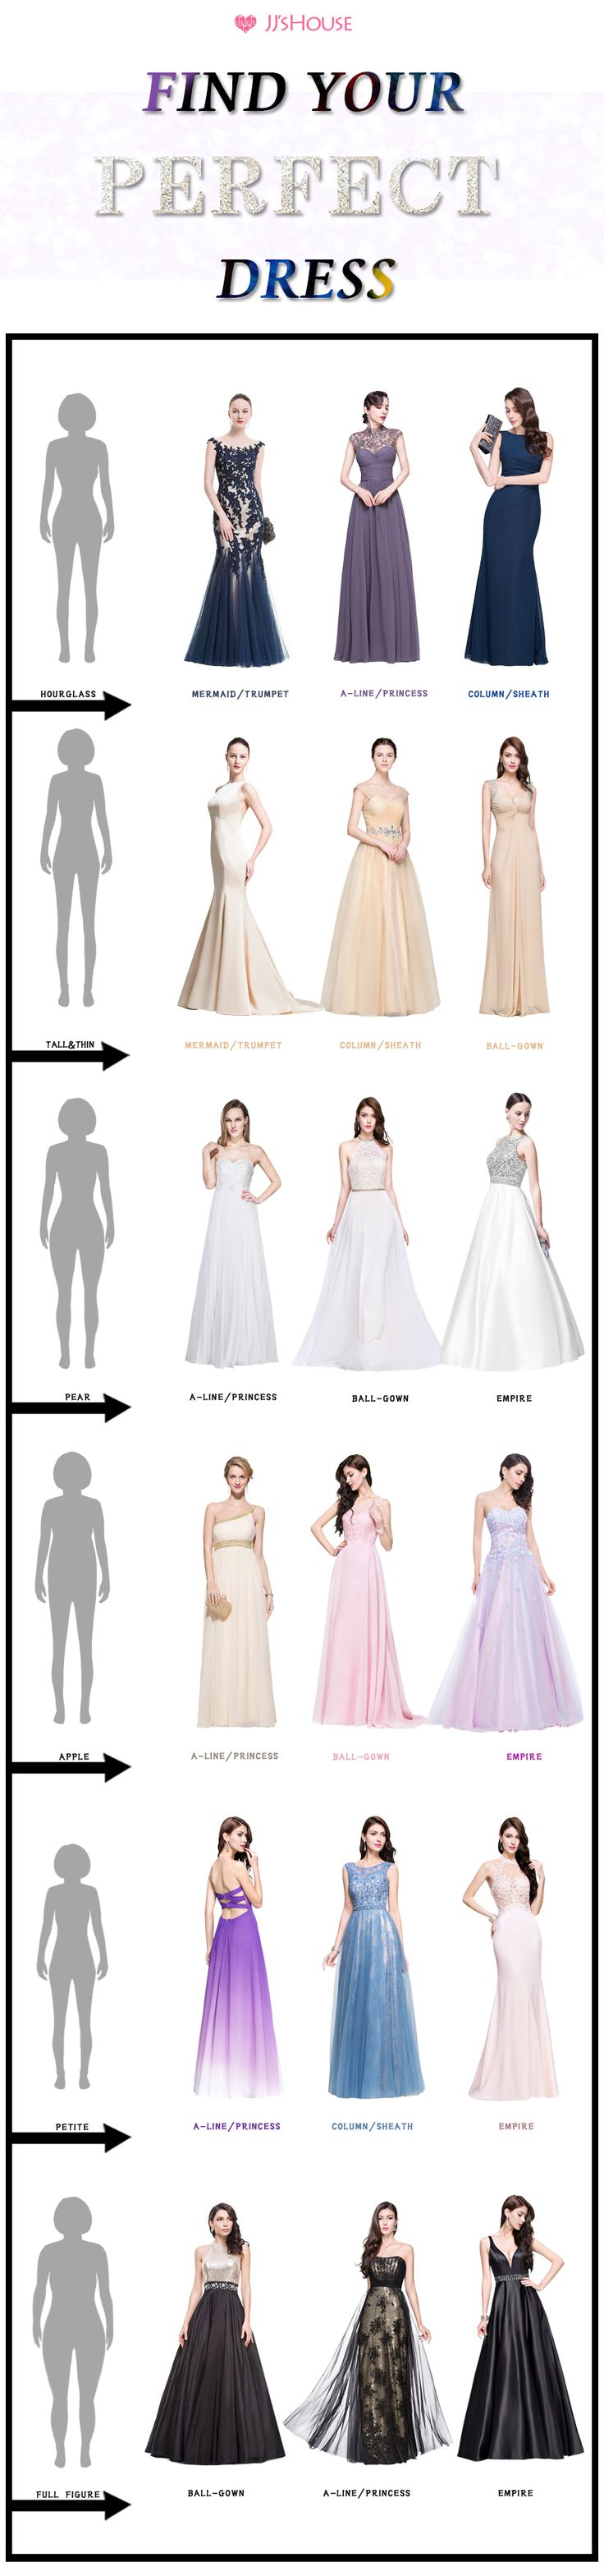 Find the Perfect Dress for YOUR Body Shape. Choosing the best dress to fit and flatter your figure will make it easier to achieve your ideal look without putting in the work to do it! Shop the collection today!